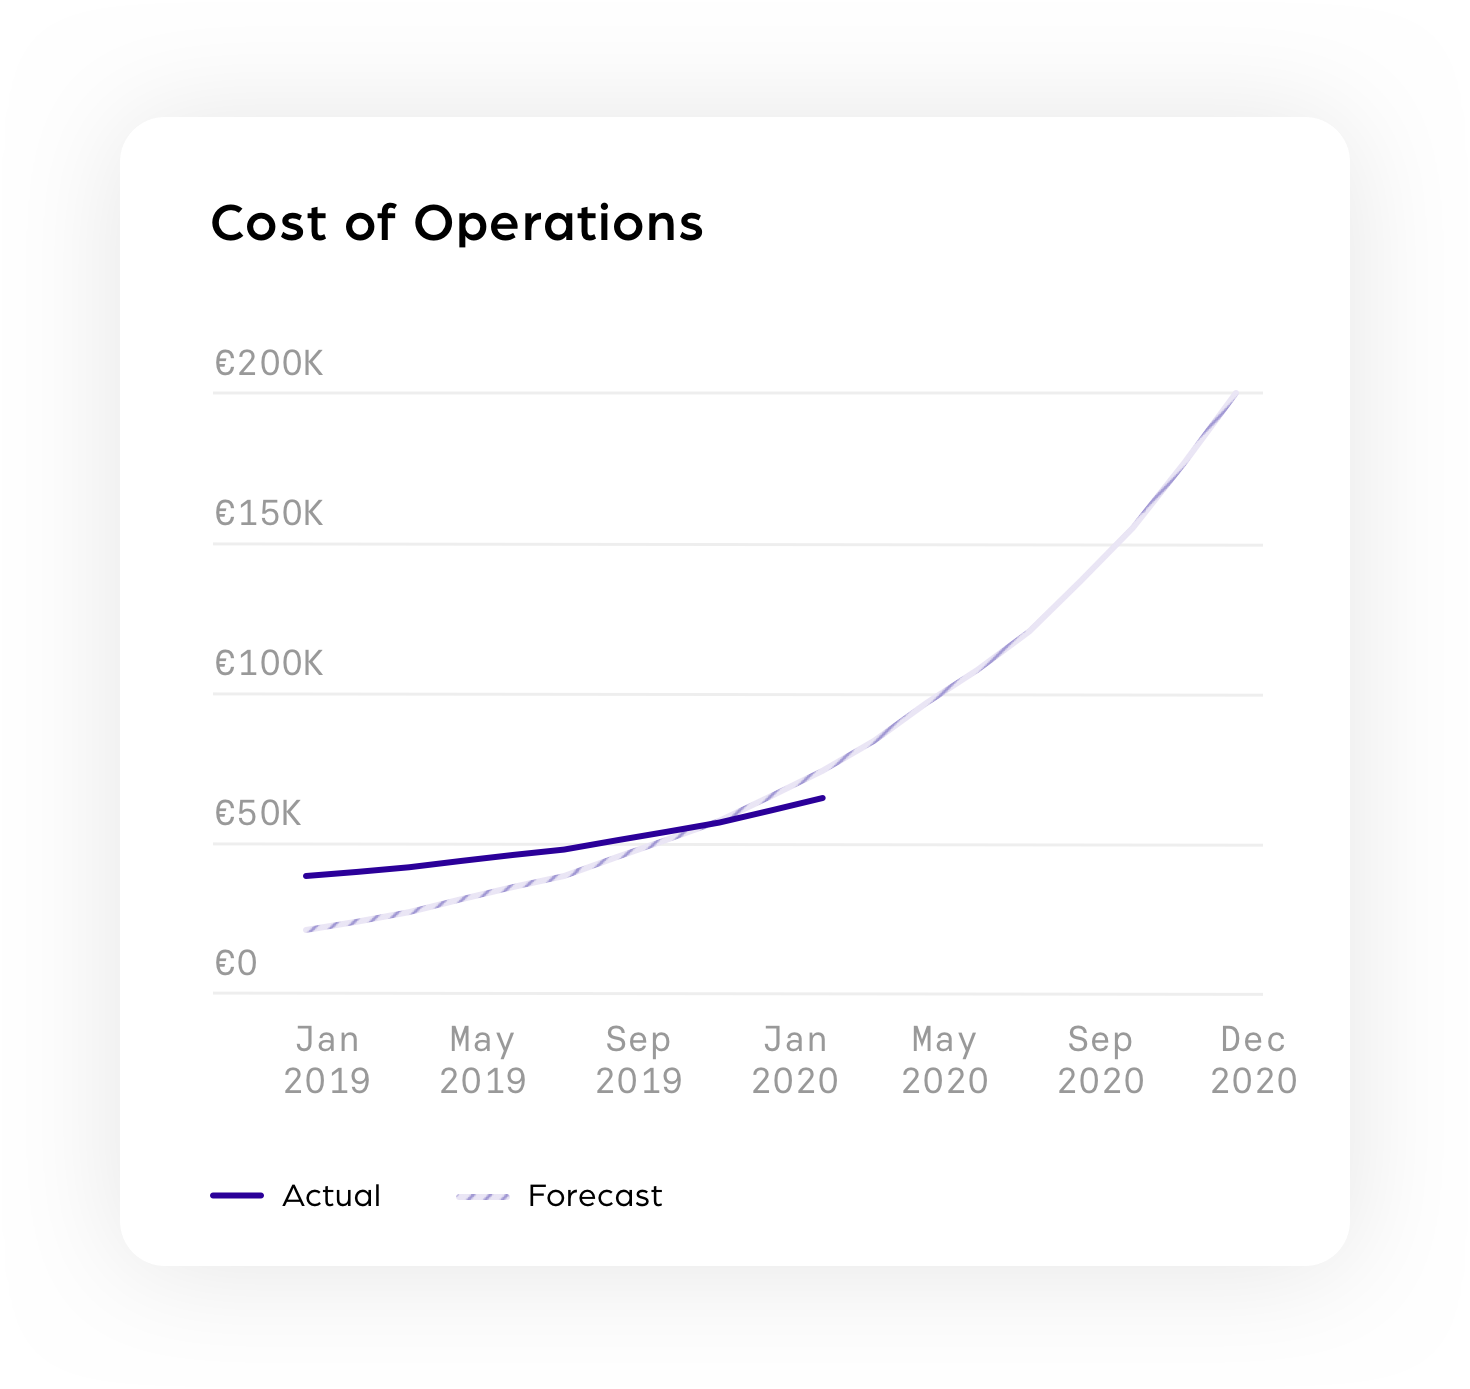 Cost of Operations@3x